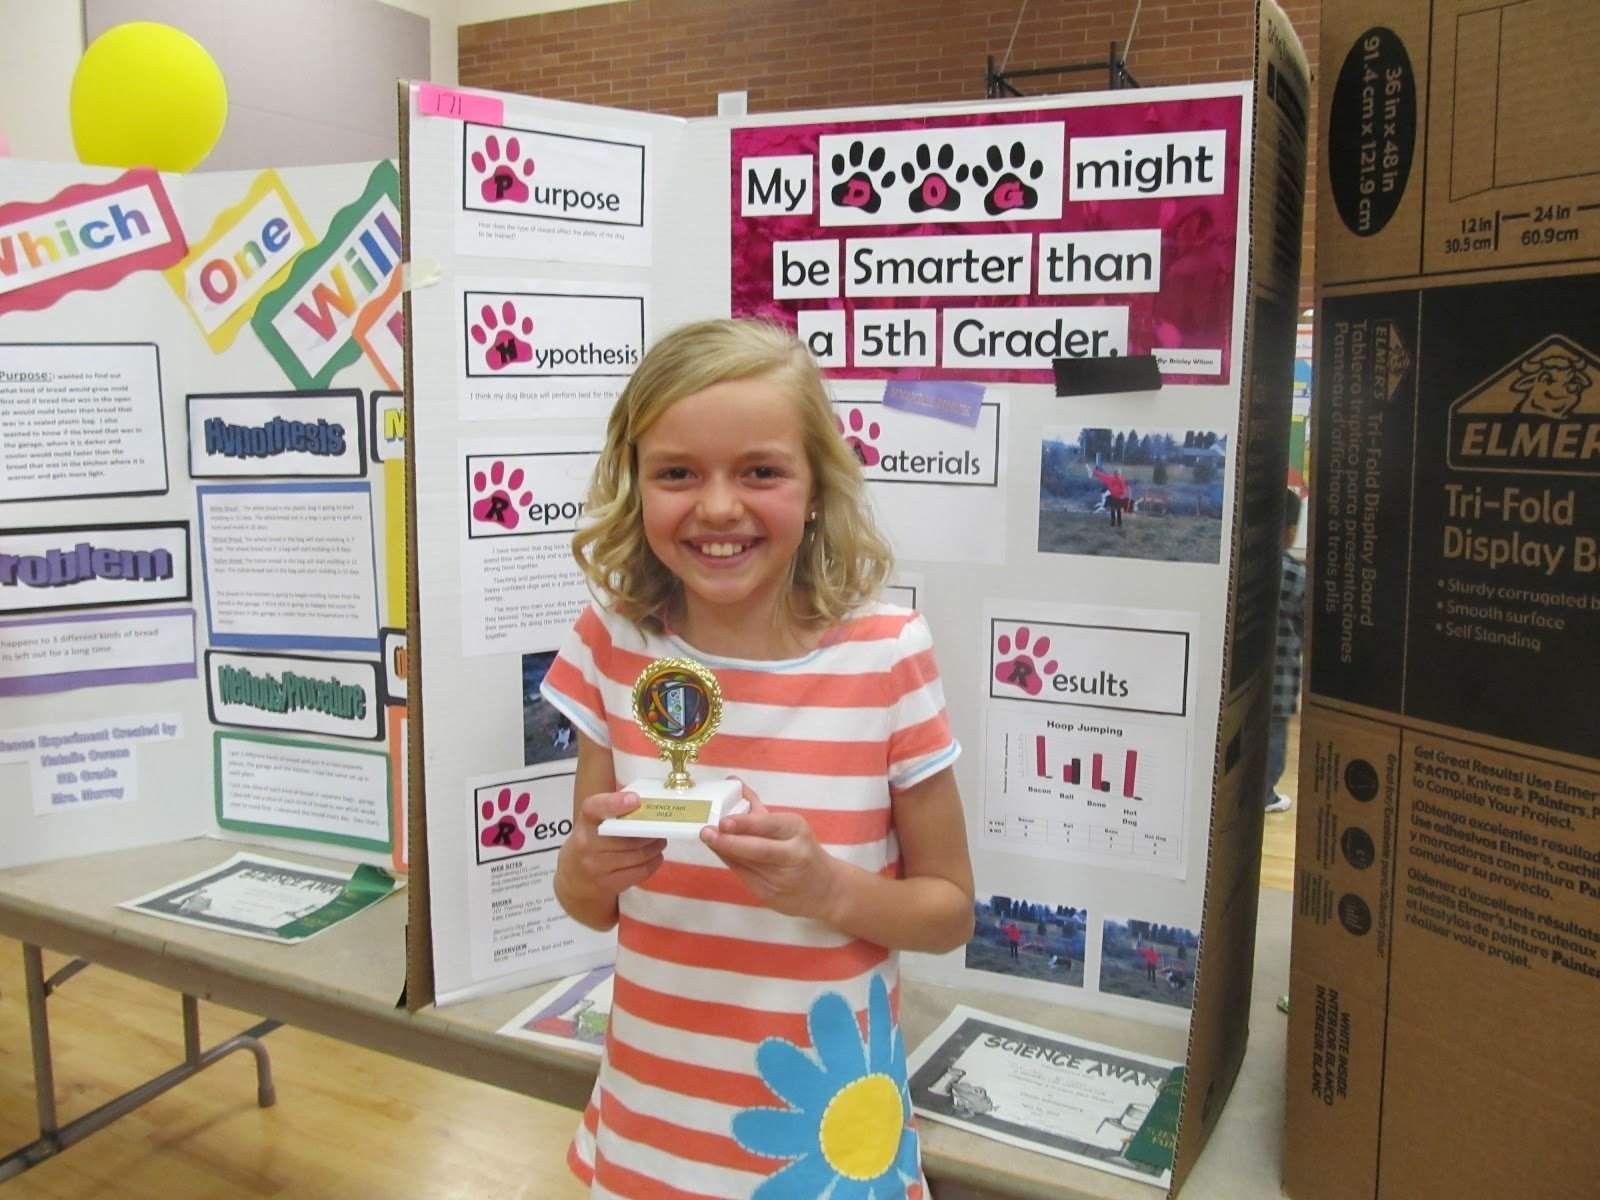 10 Cute Science Fair Project Ideas For 5Th Grade science fair projects on space kids online science experiment 1 2021